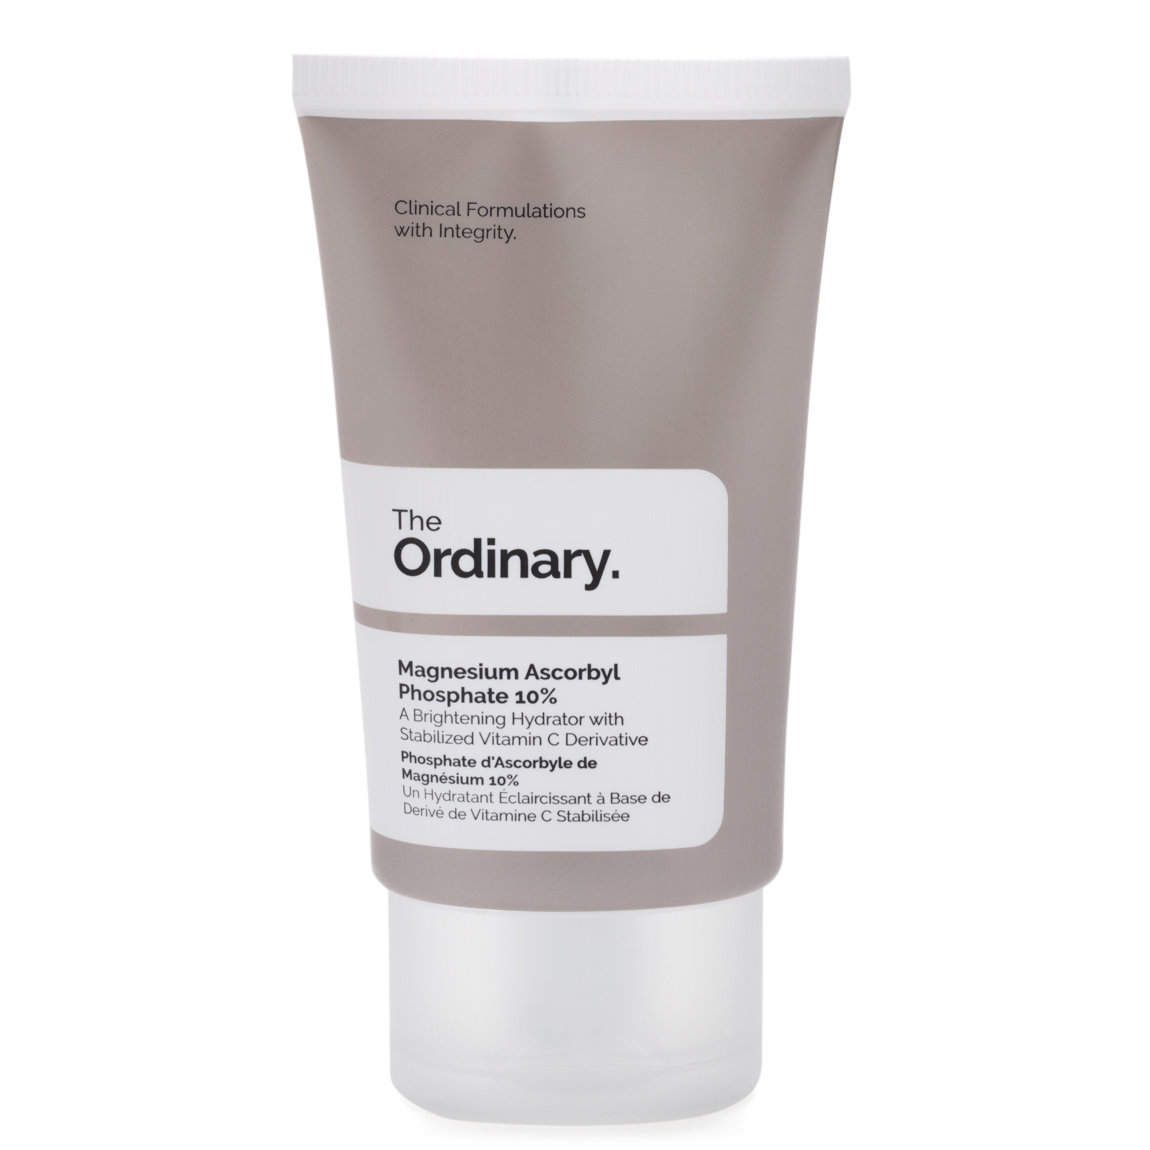 The Ordinary. Magnesium Ascorbyl Phosphate 10% product swatch.